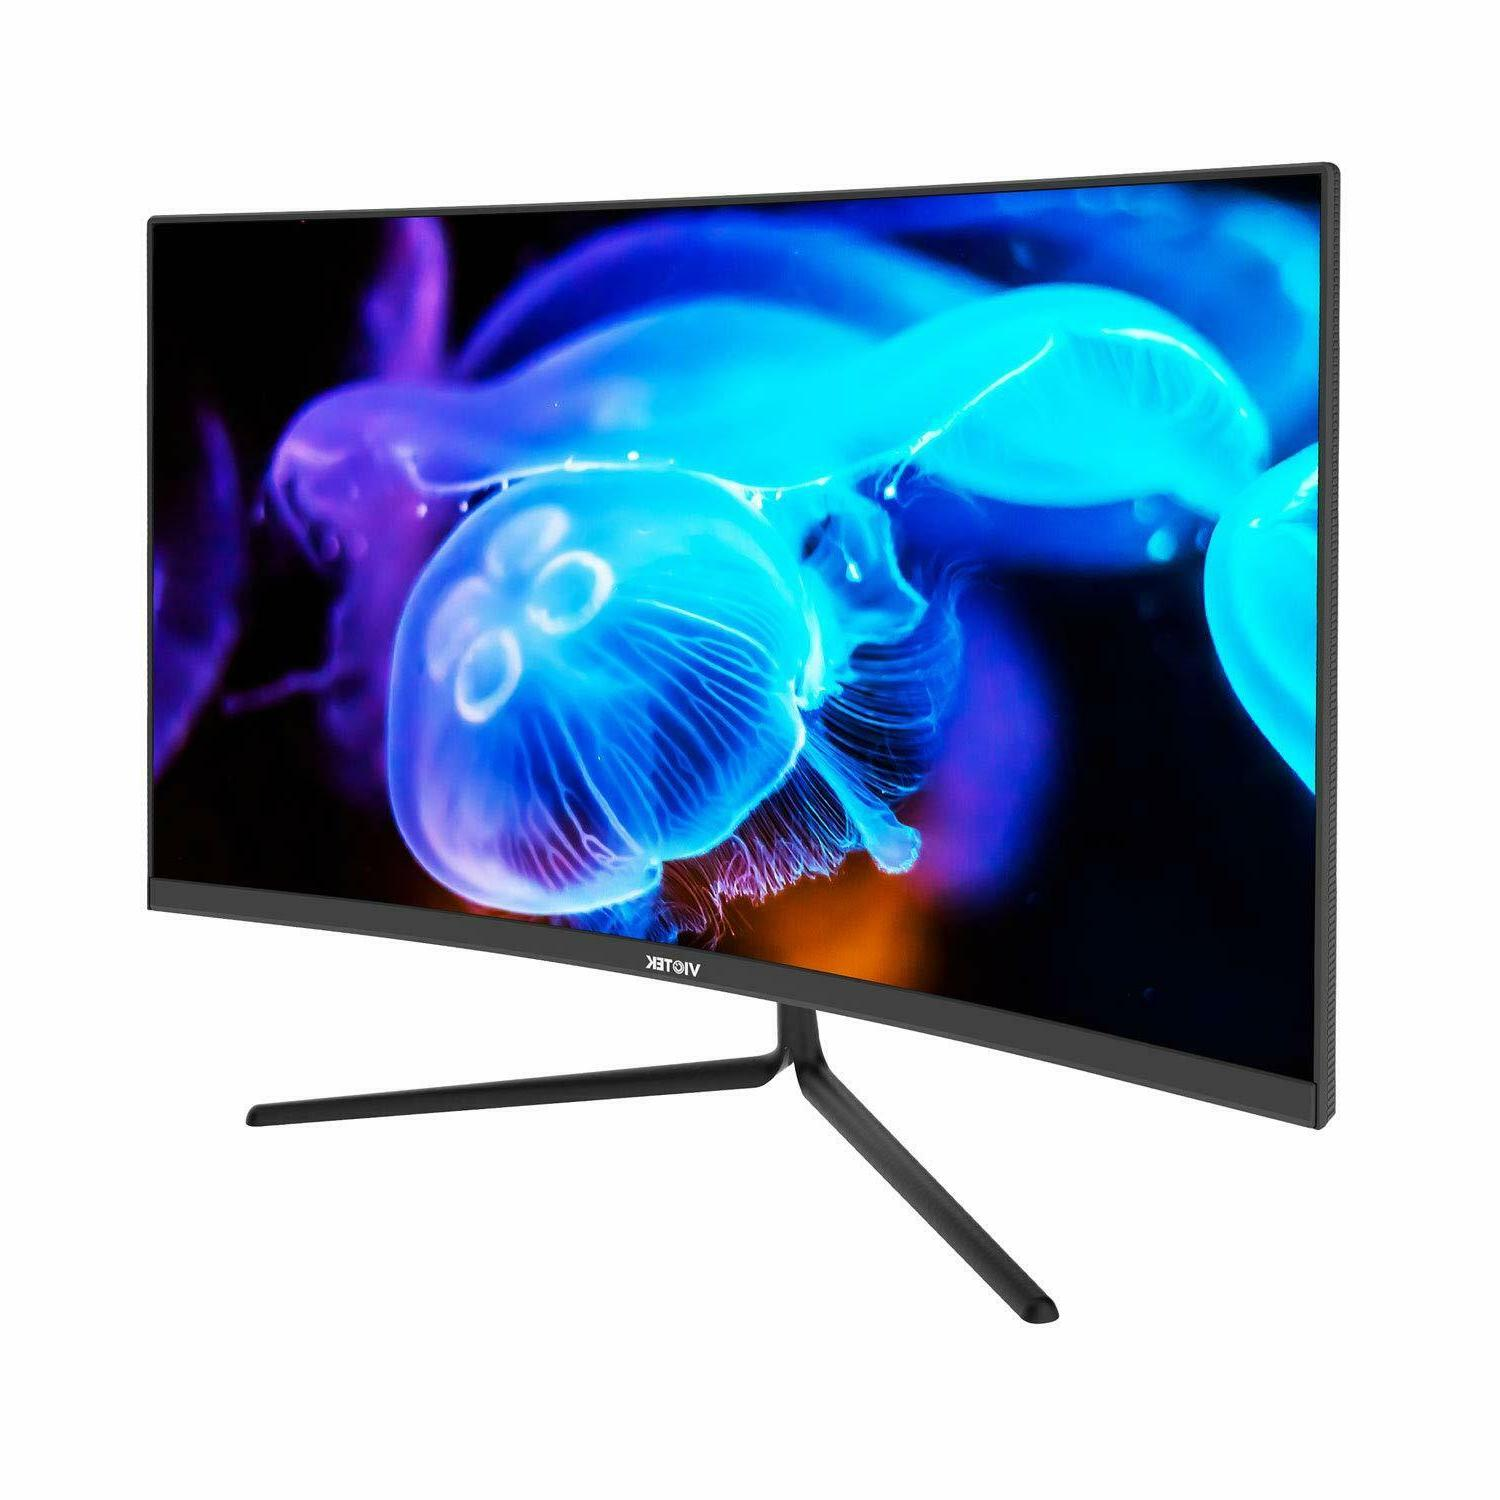 nbv27cb 27 inch curved monitor 75hz 1920x1080p